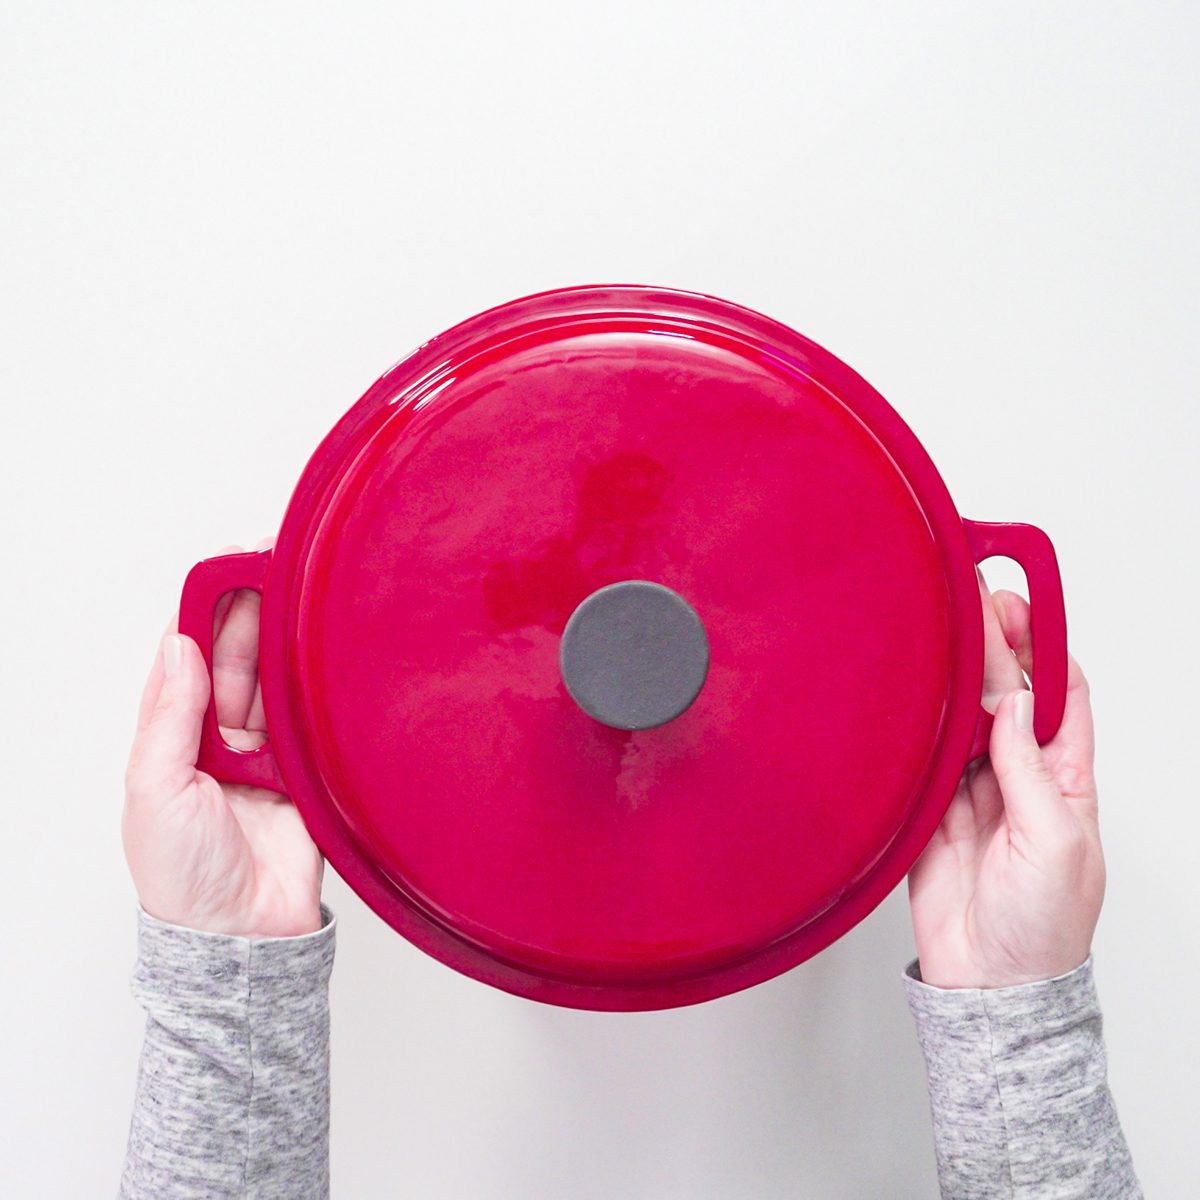 Flat lay. Red, white, and blue enameled cast iron covered dutch oven on a white background.